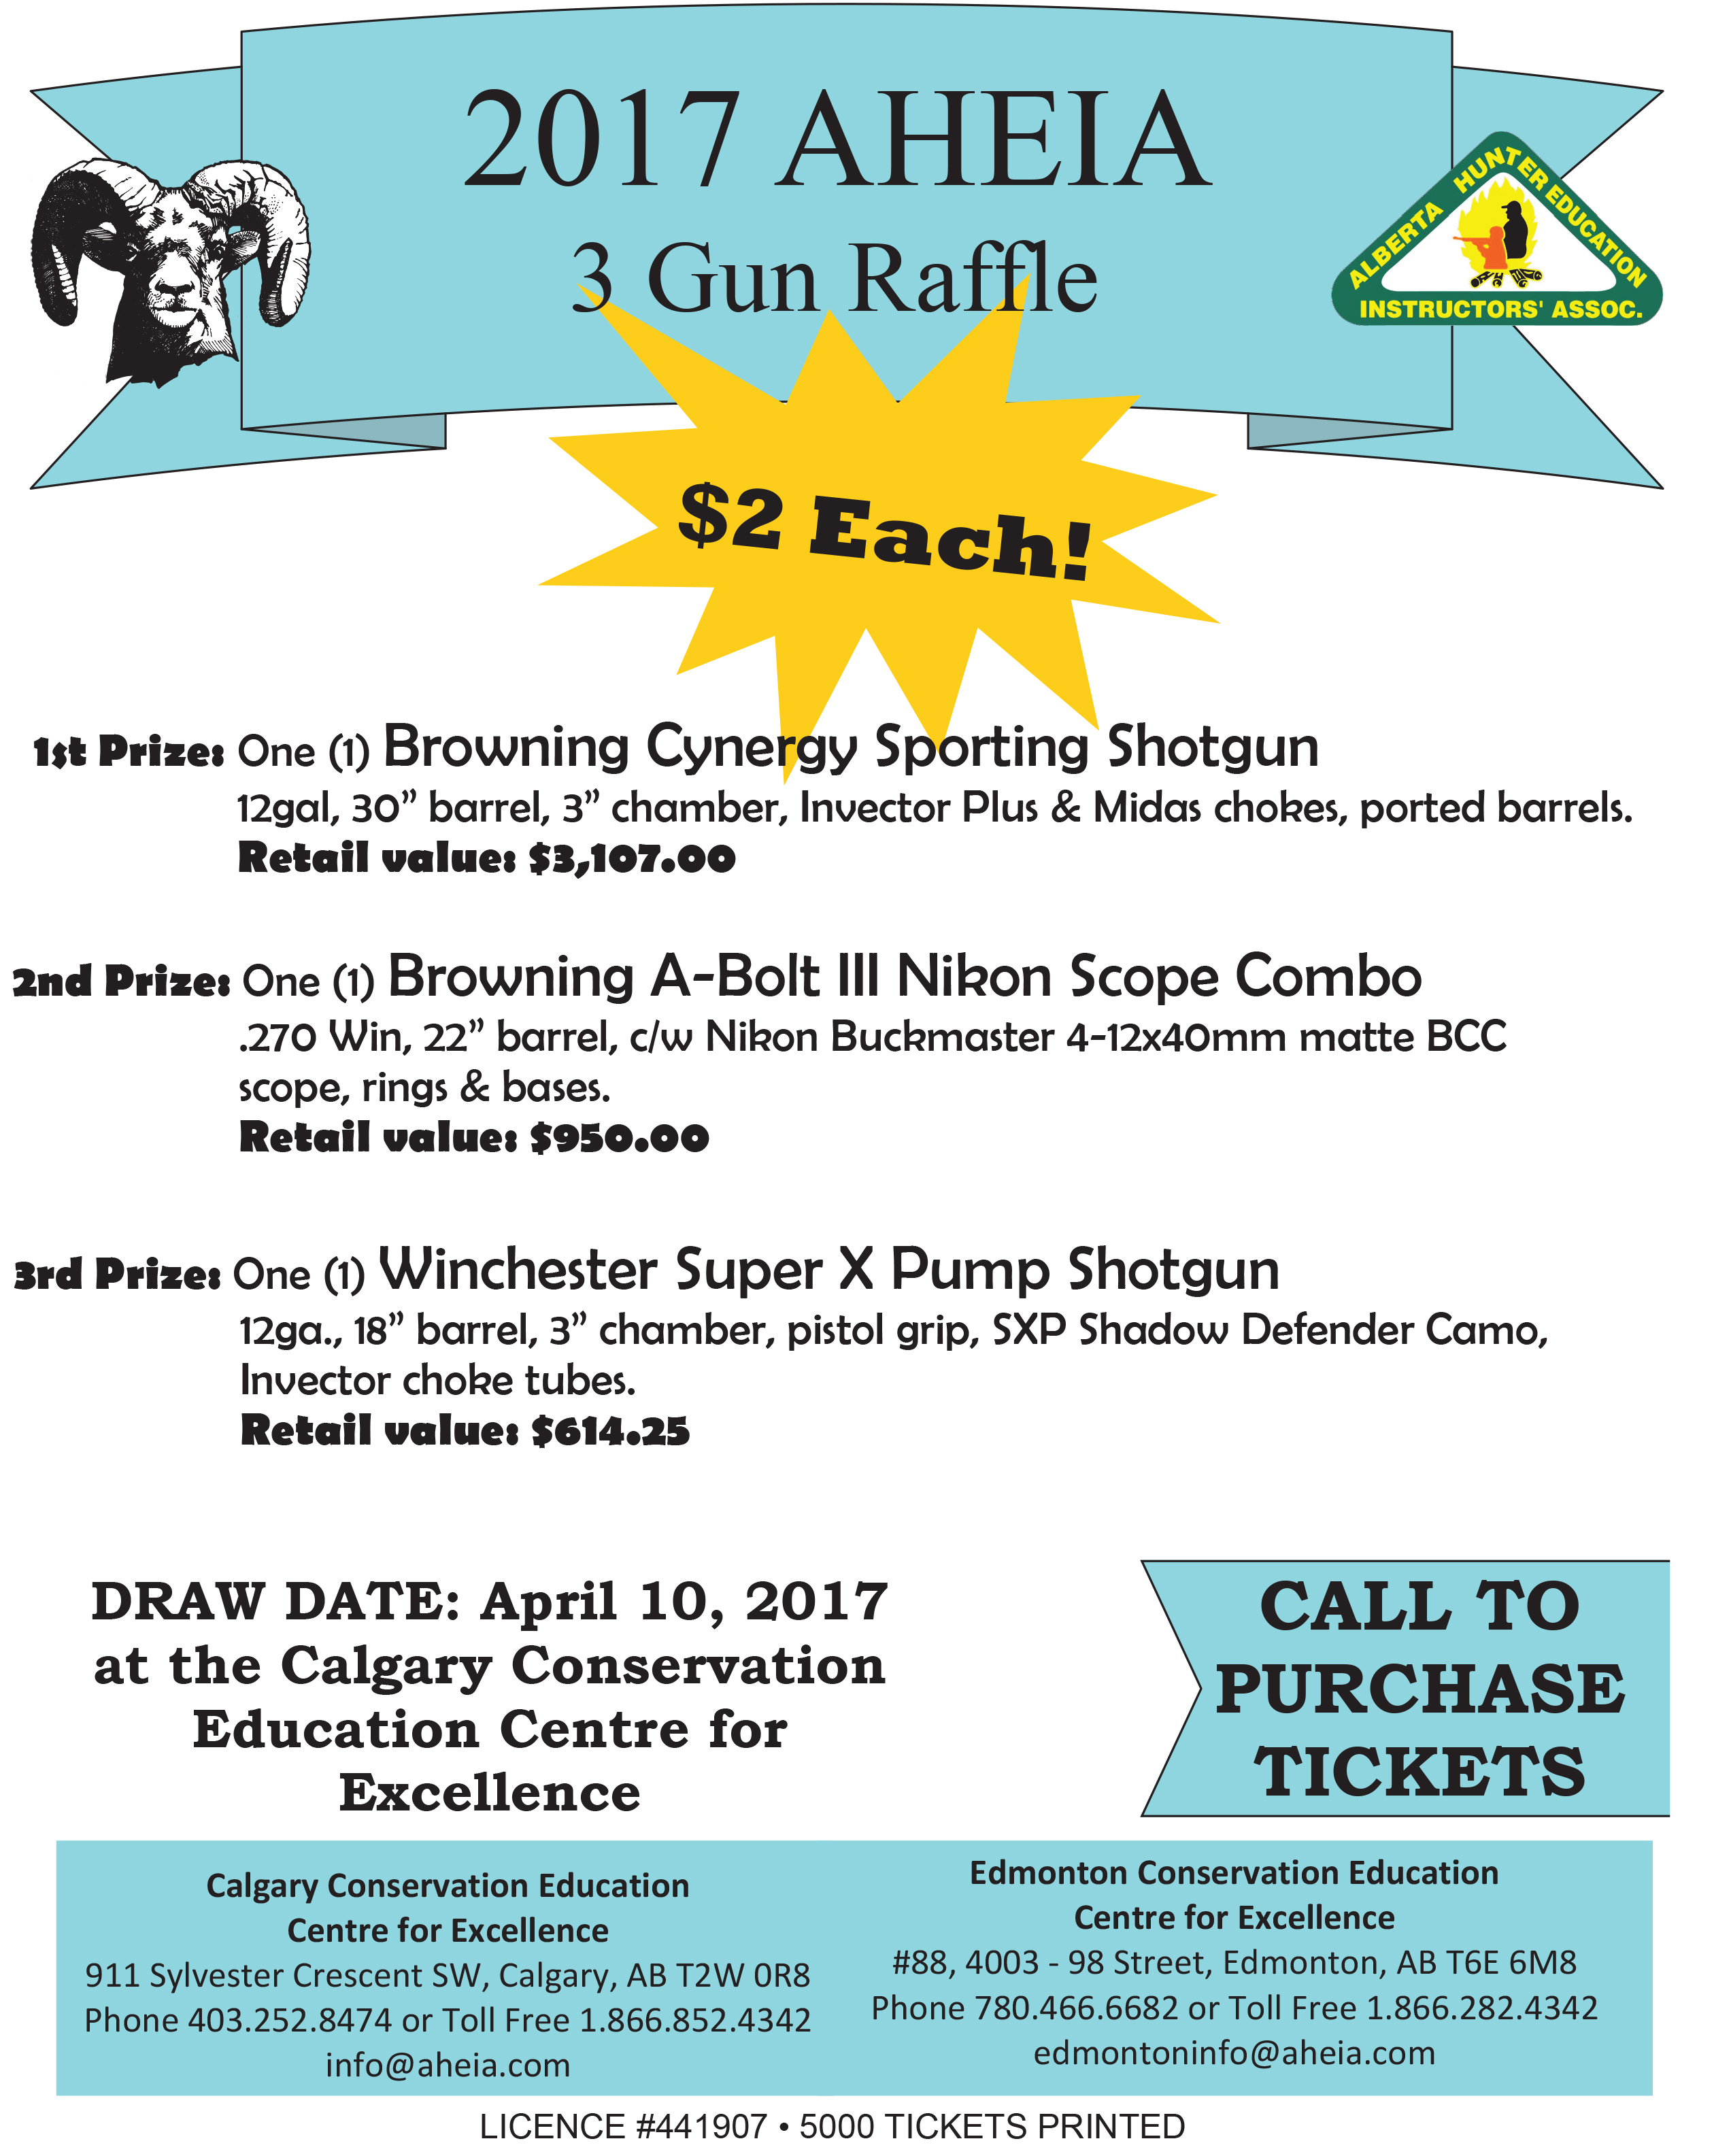 aheia fundraising raffles association of conservation and hunter tickets for these raffles can be purchased over the phone by contacting either